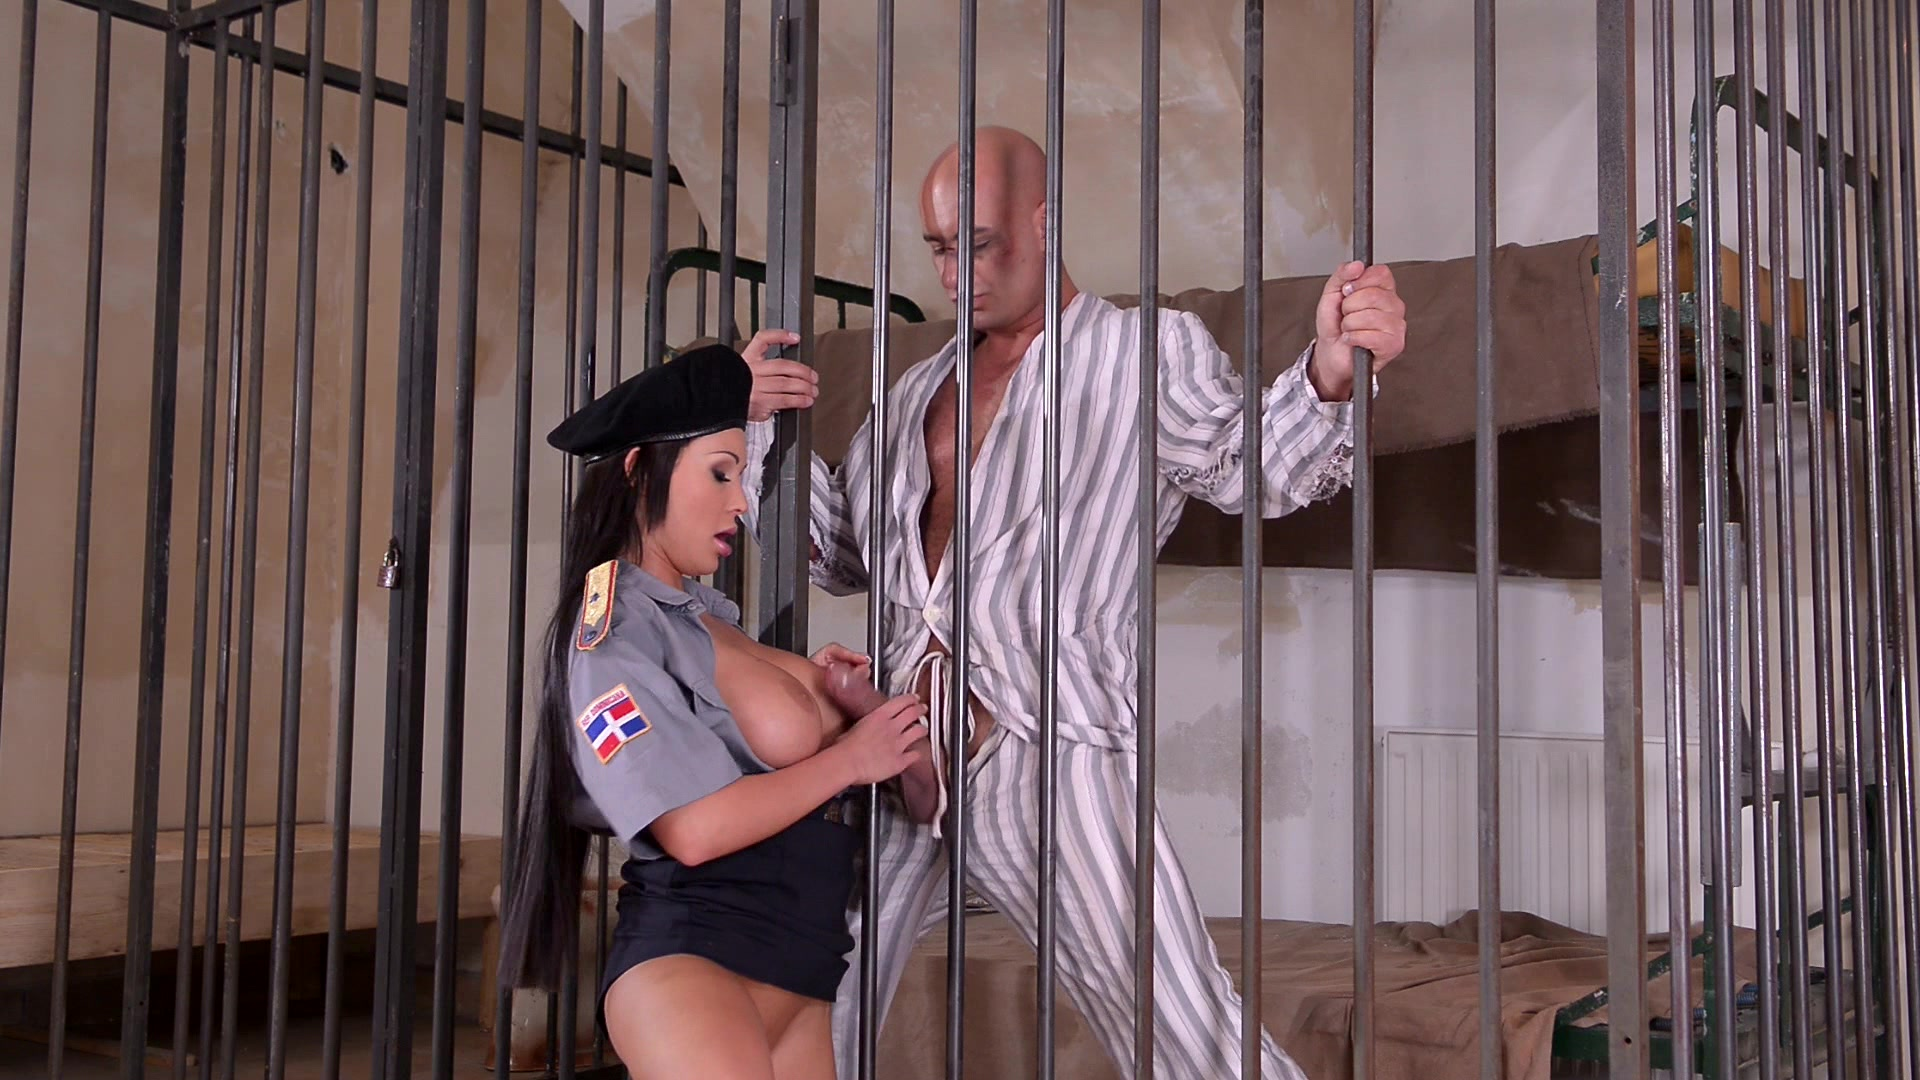 Mafiosi wife fucked the prison guard for her husband's freedom